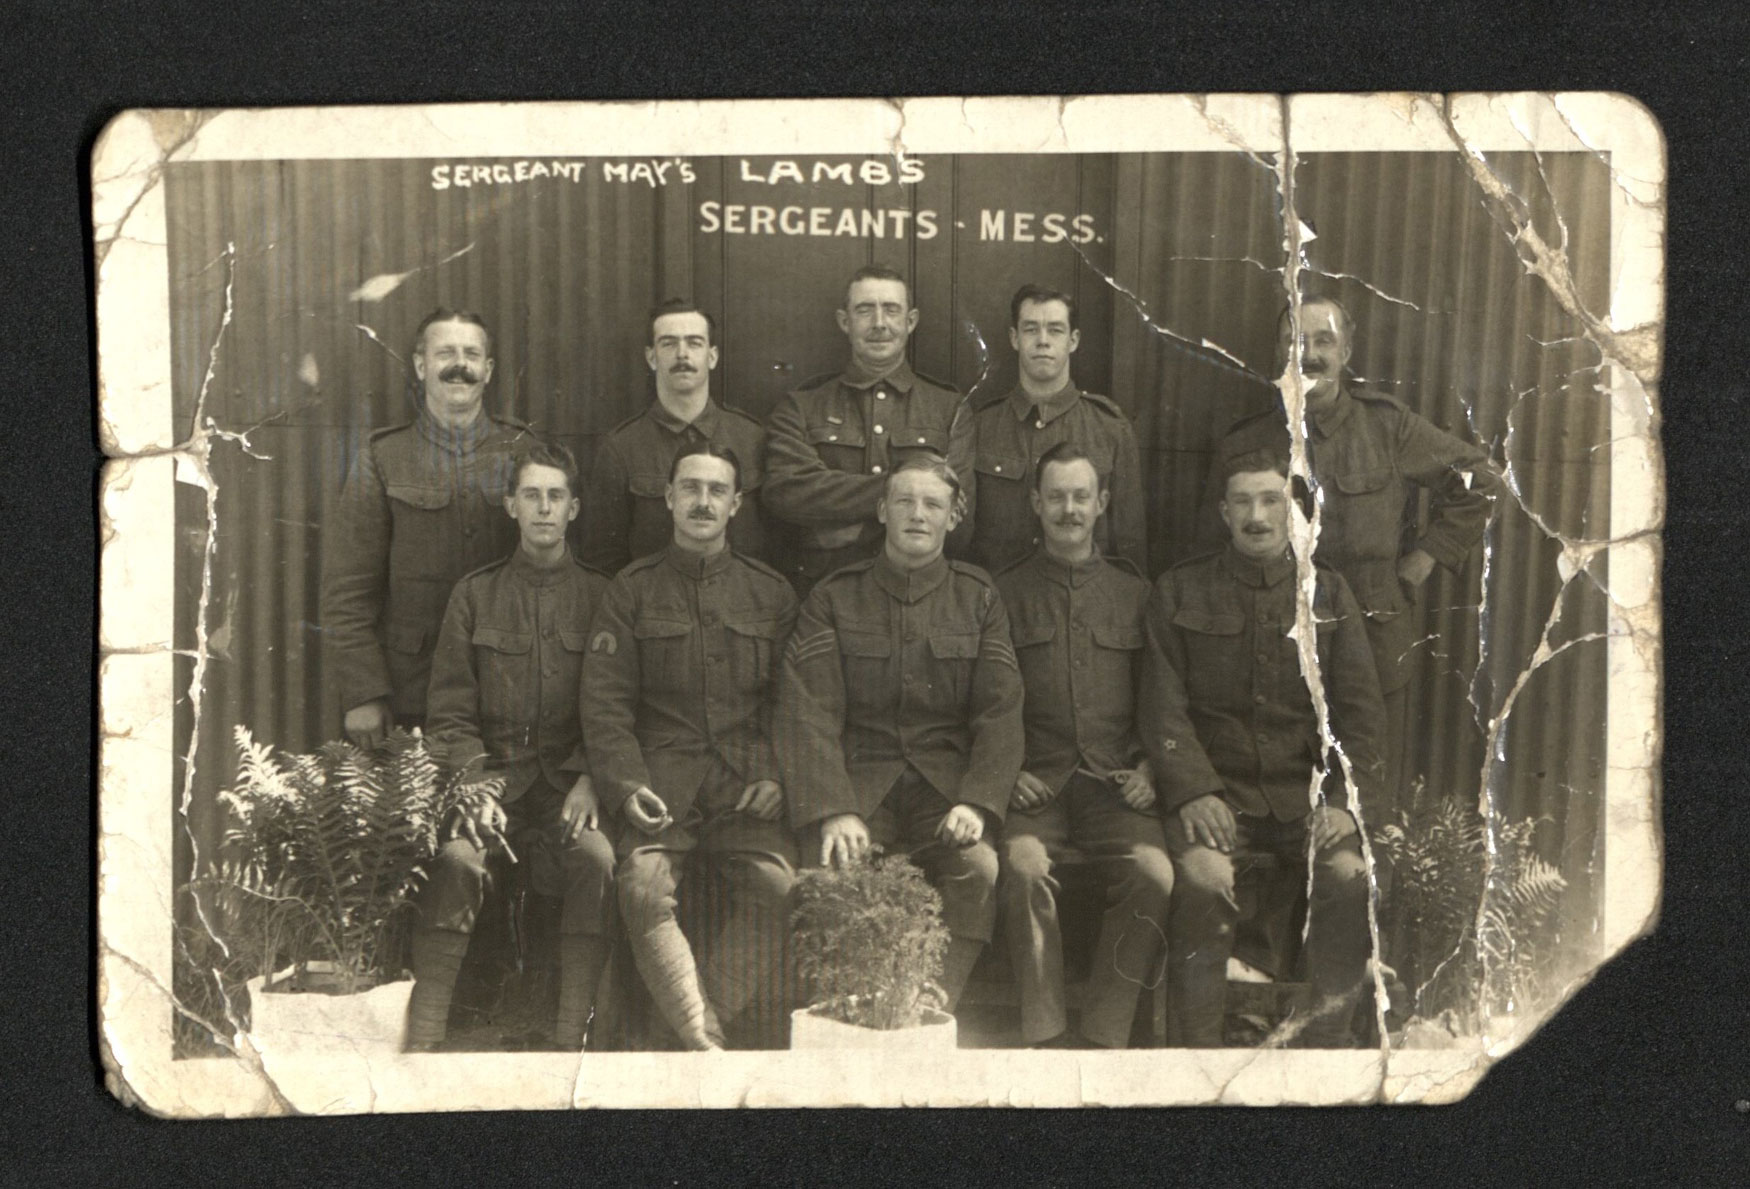 A posed photograph of soldiers in front of the sergeants mess.